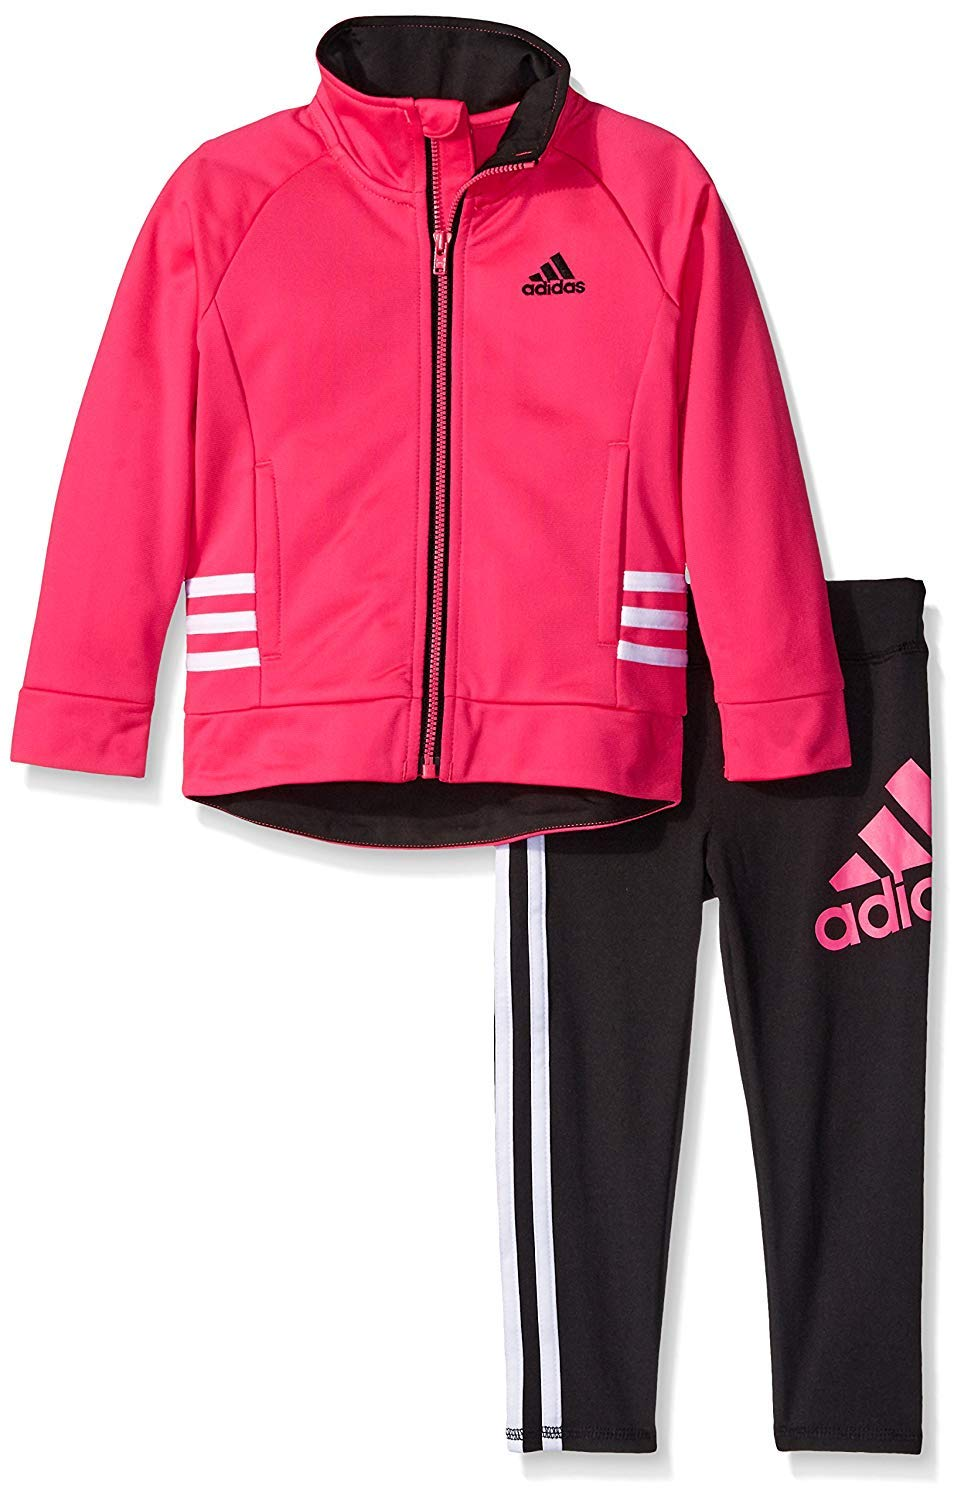 Adidas Girls 2 Piece Active Set Pink Size 6